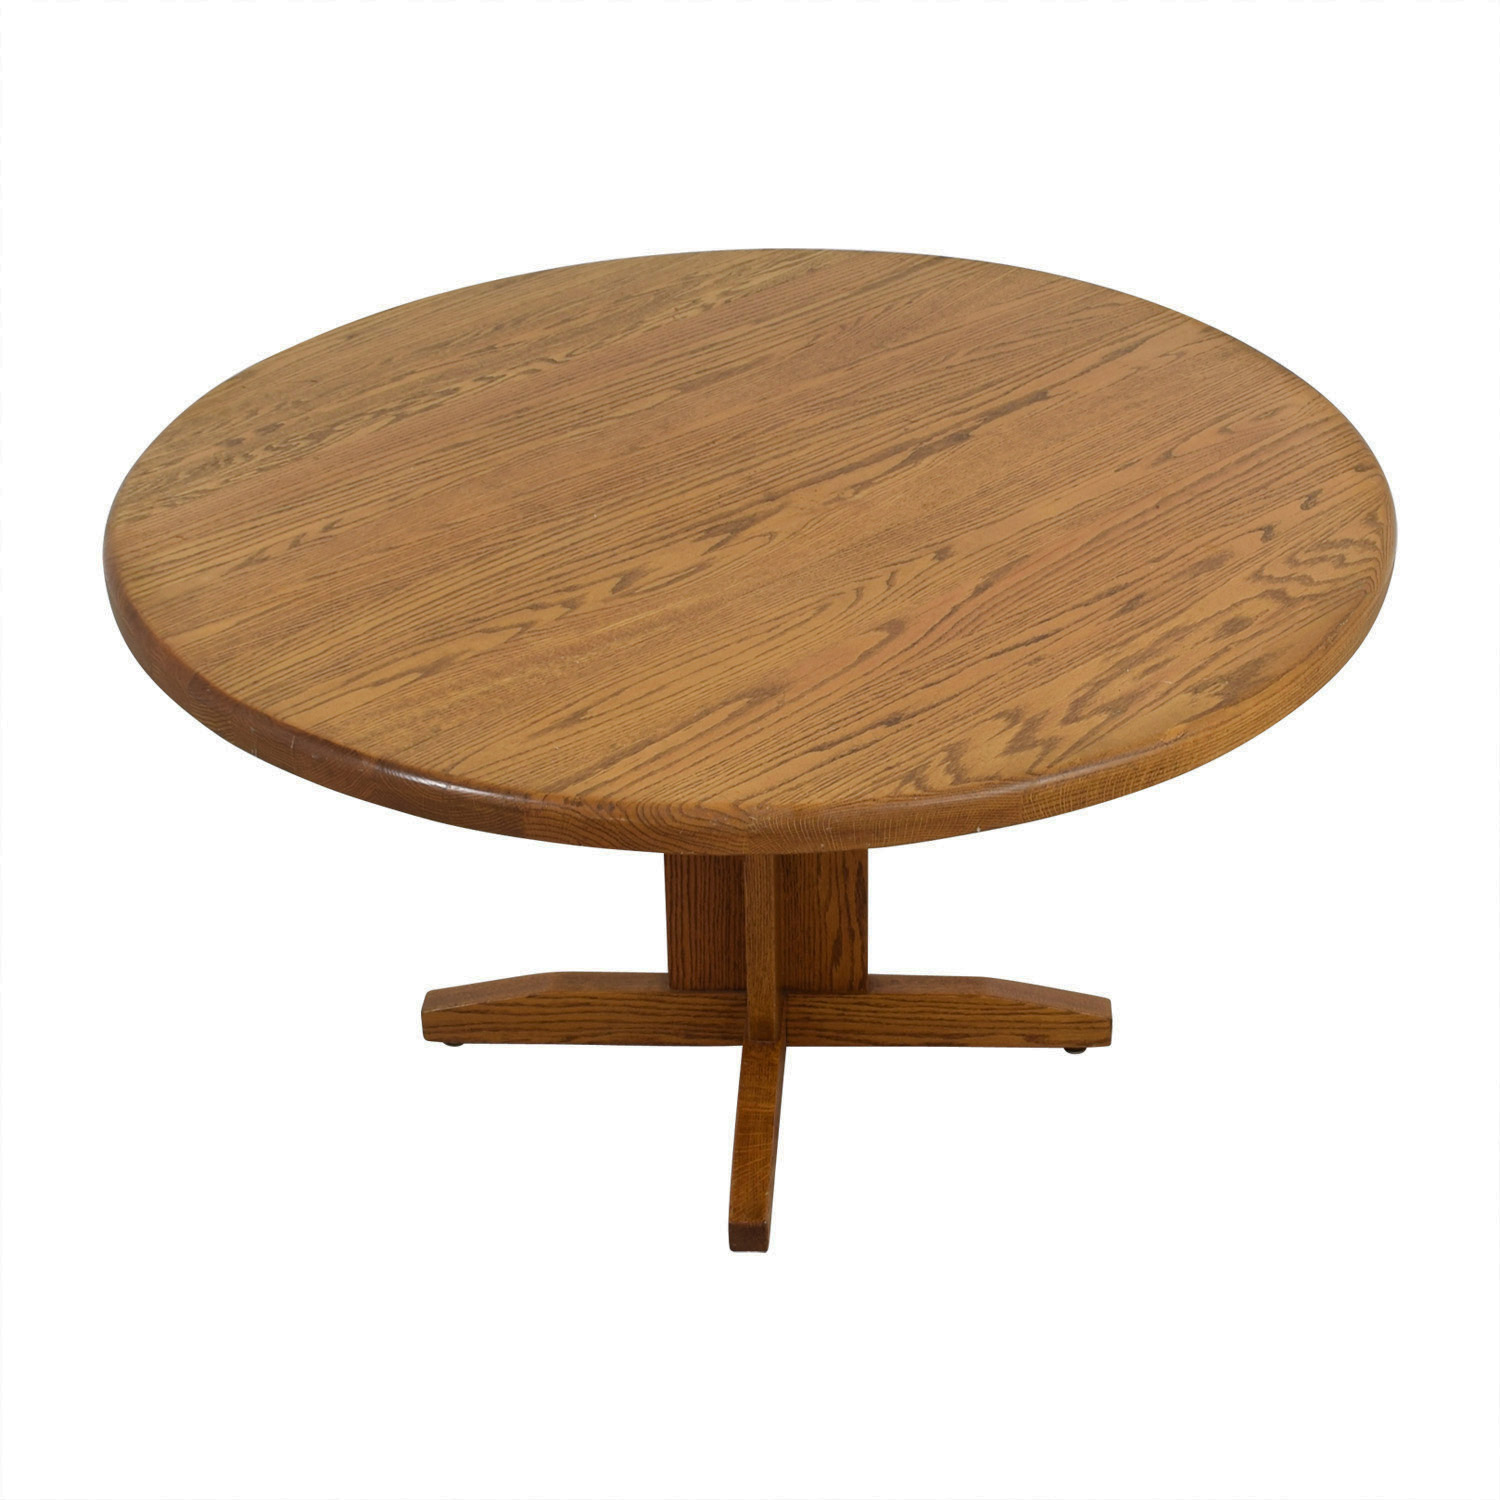 76 off west elm west elm terra dining table tables for Spl table 99 00